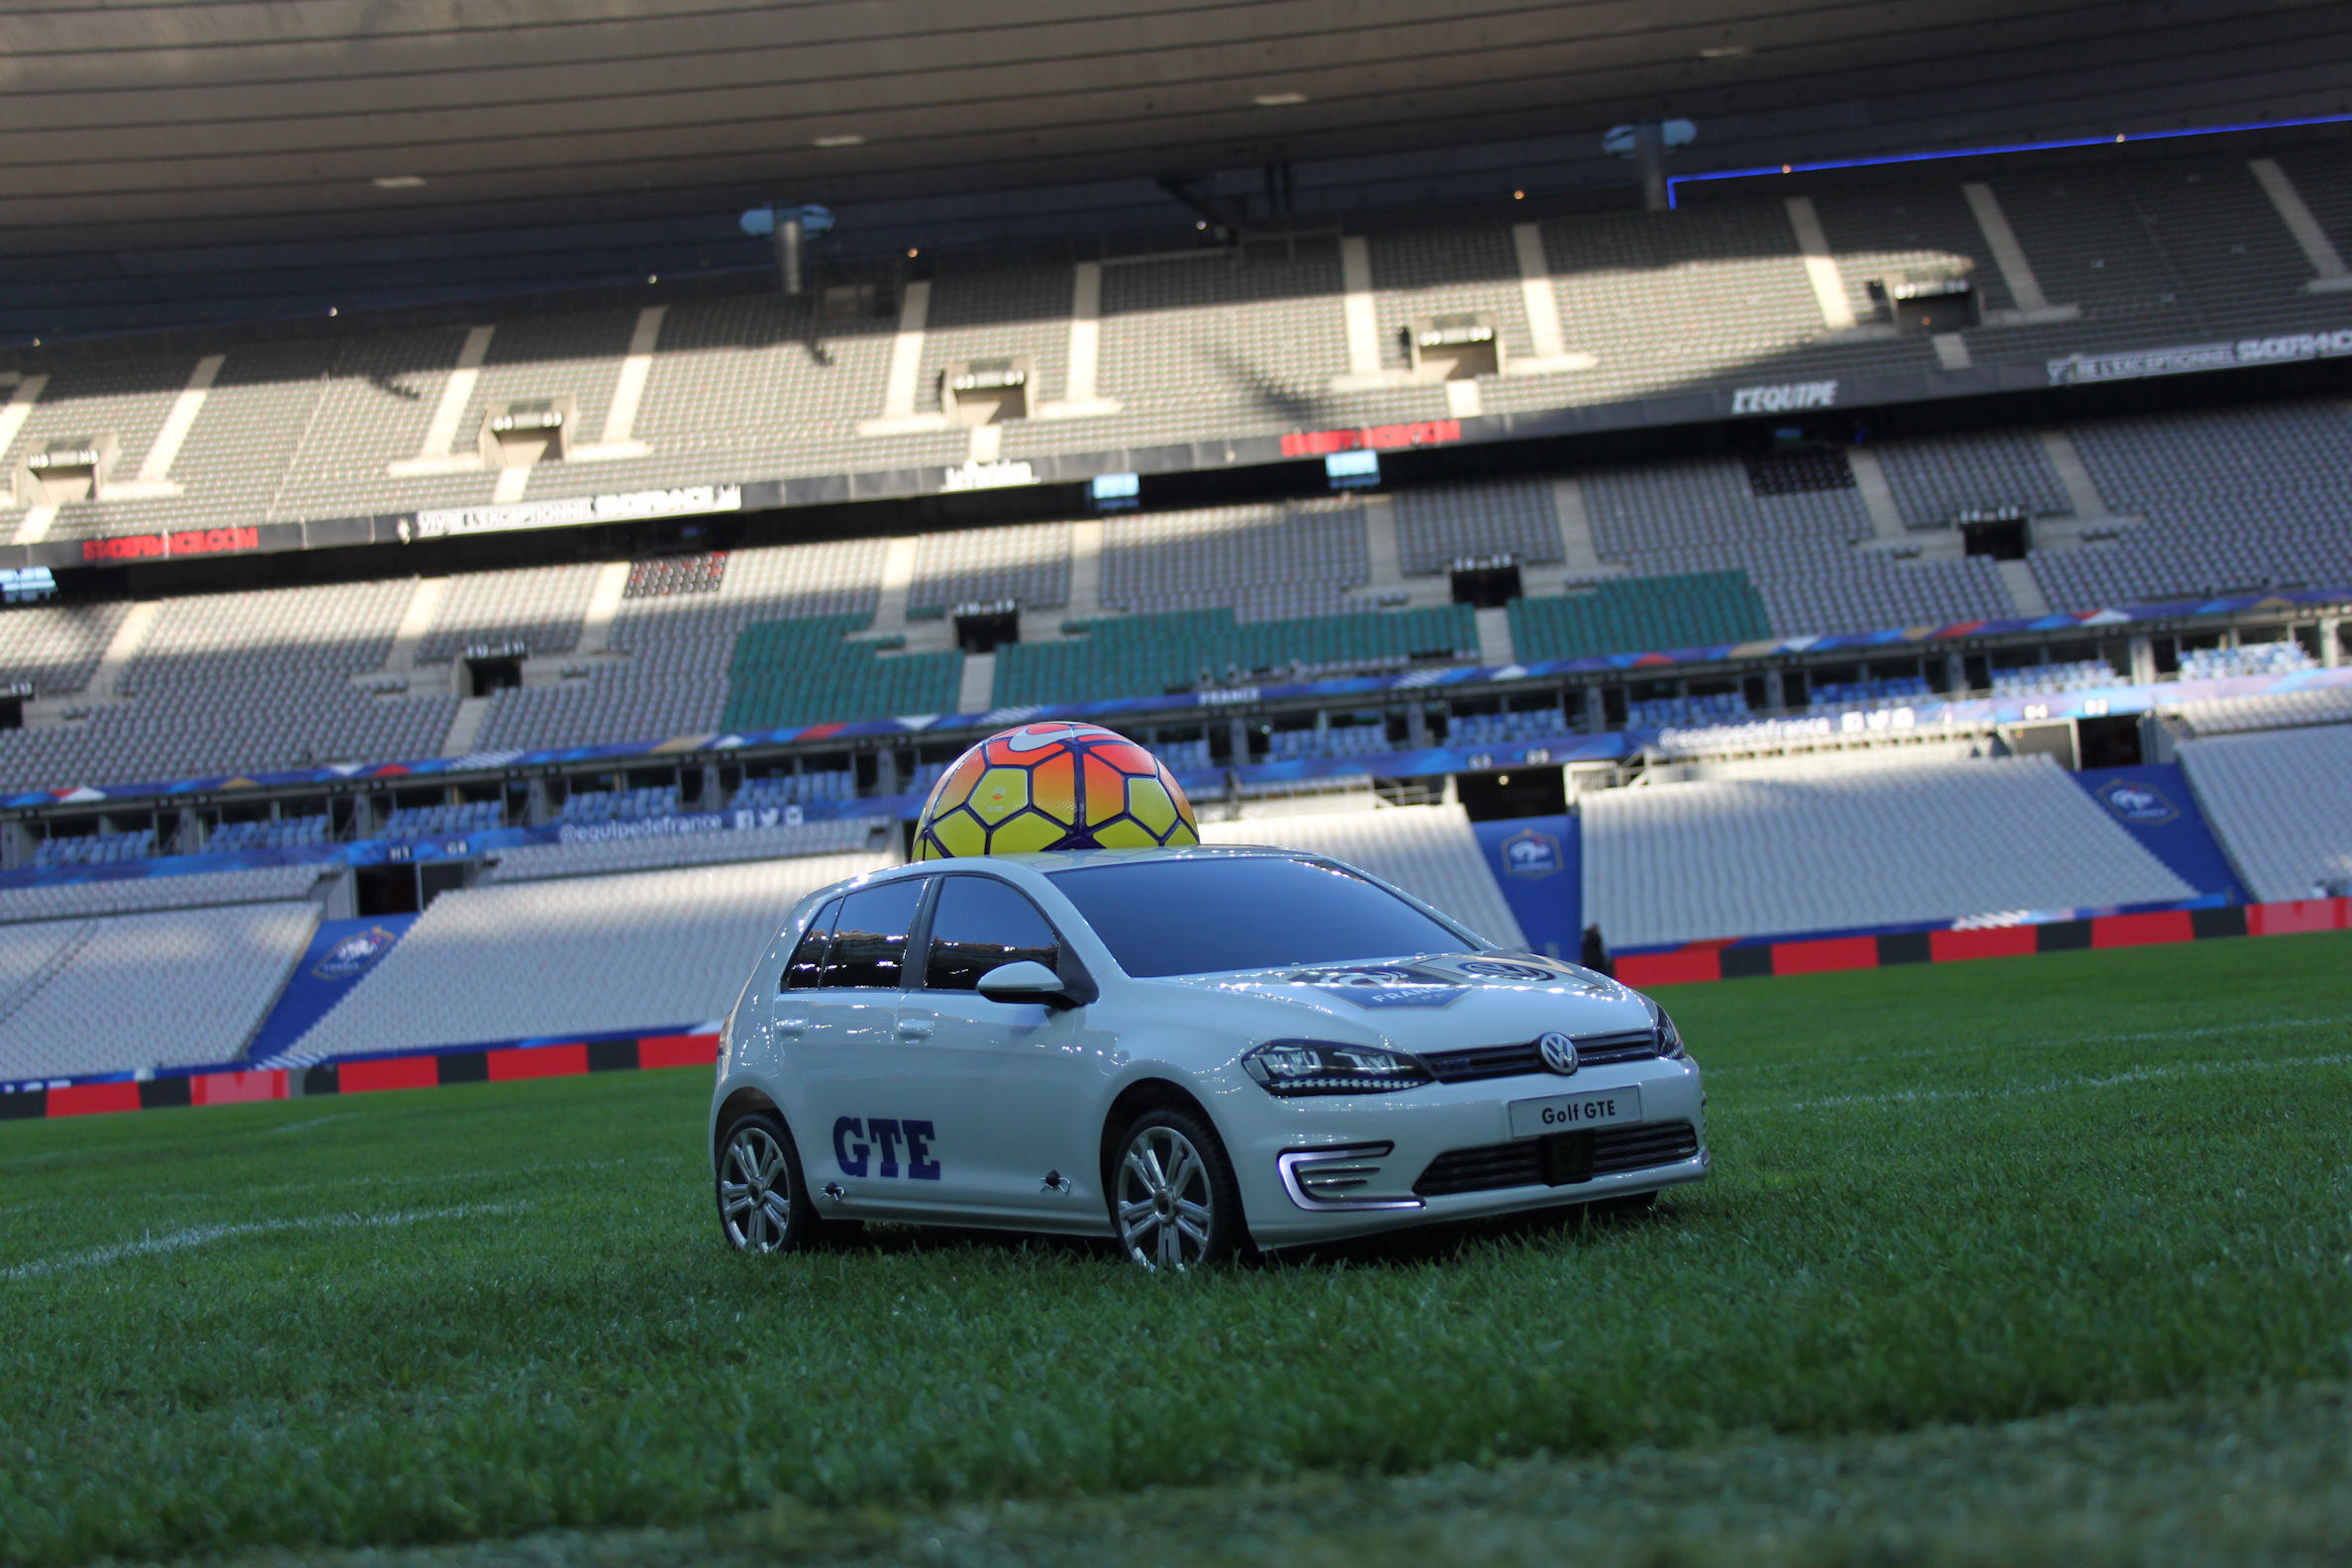 VW_Golf_GTE_Stade_de_France_2015_